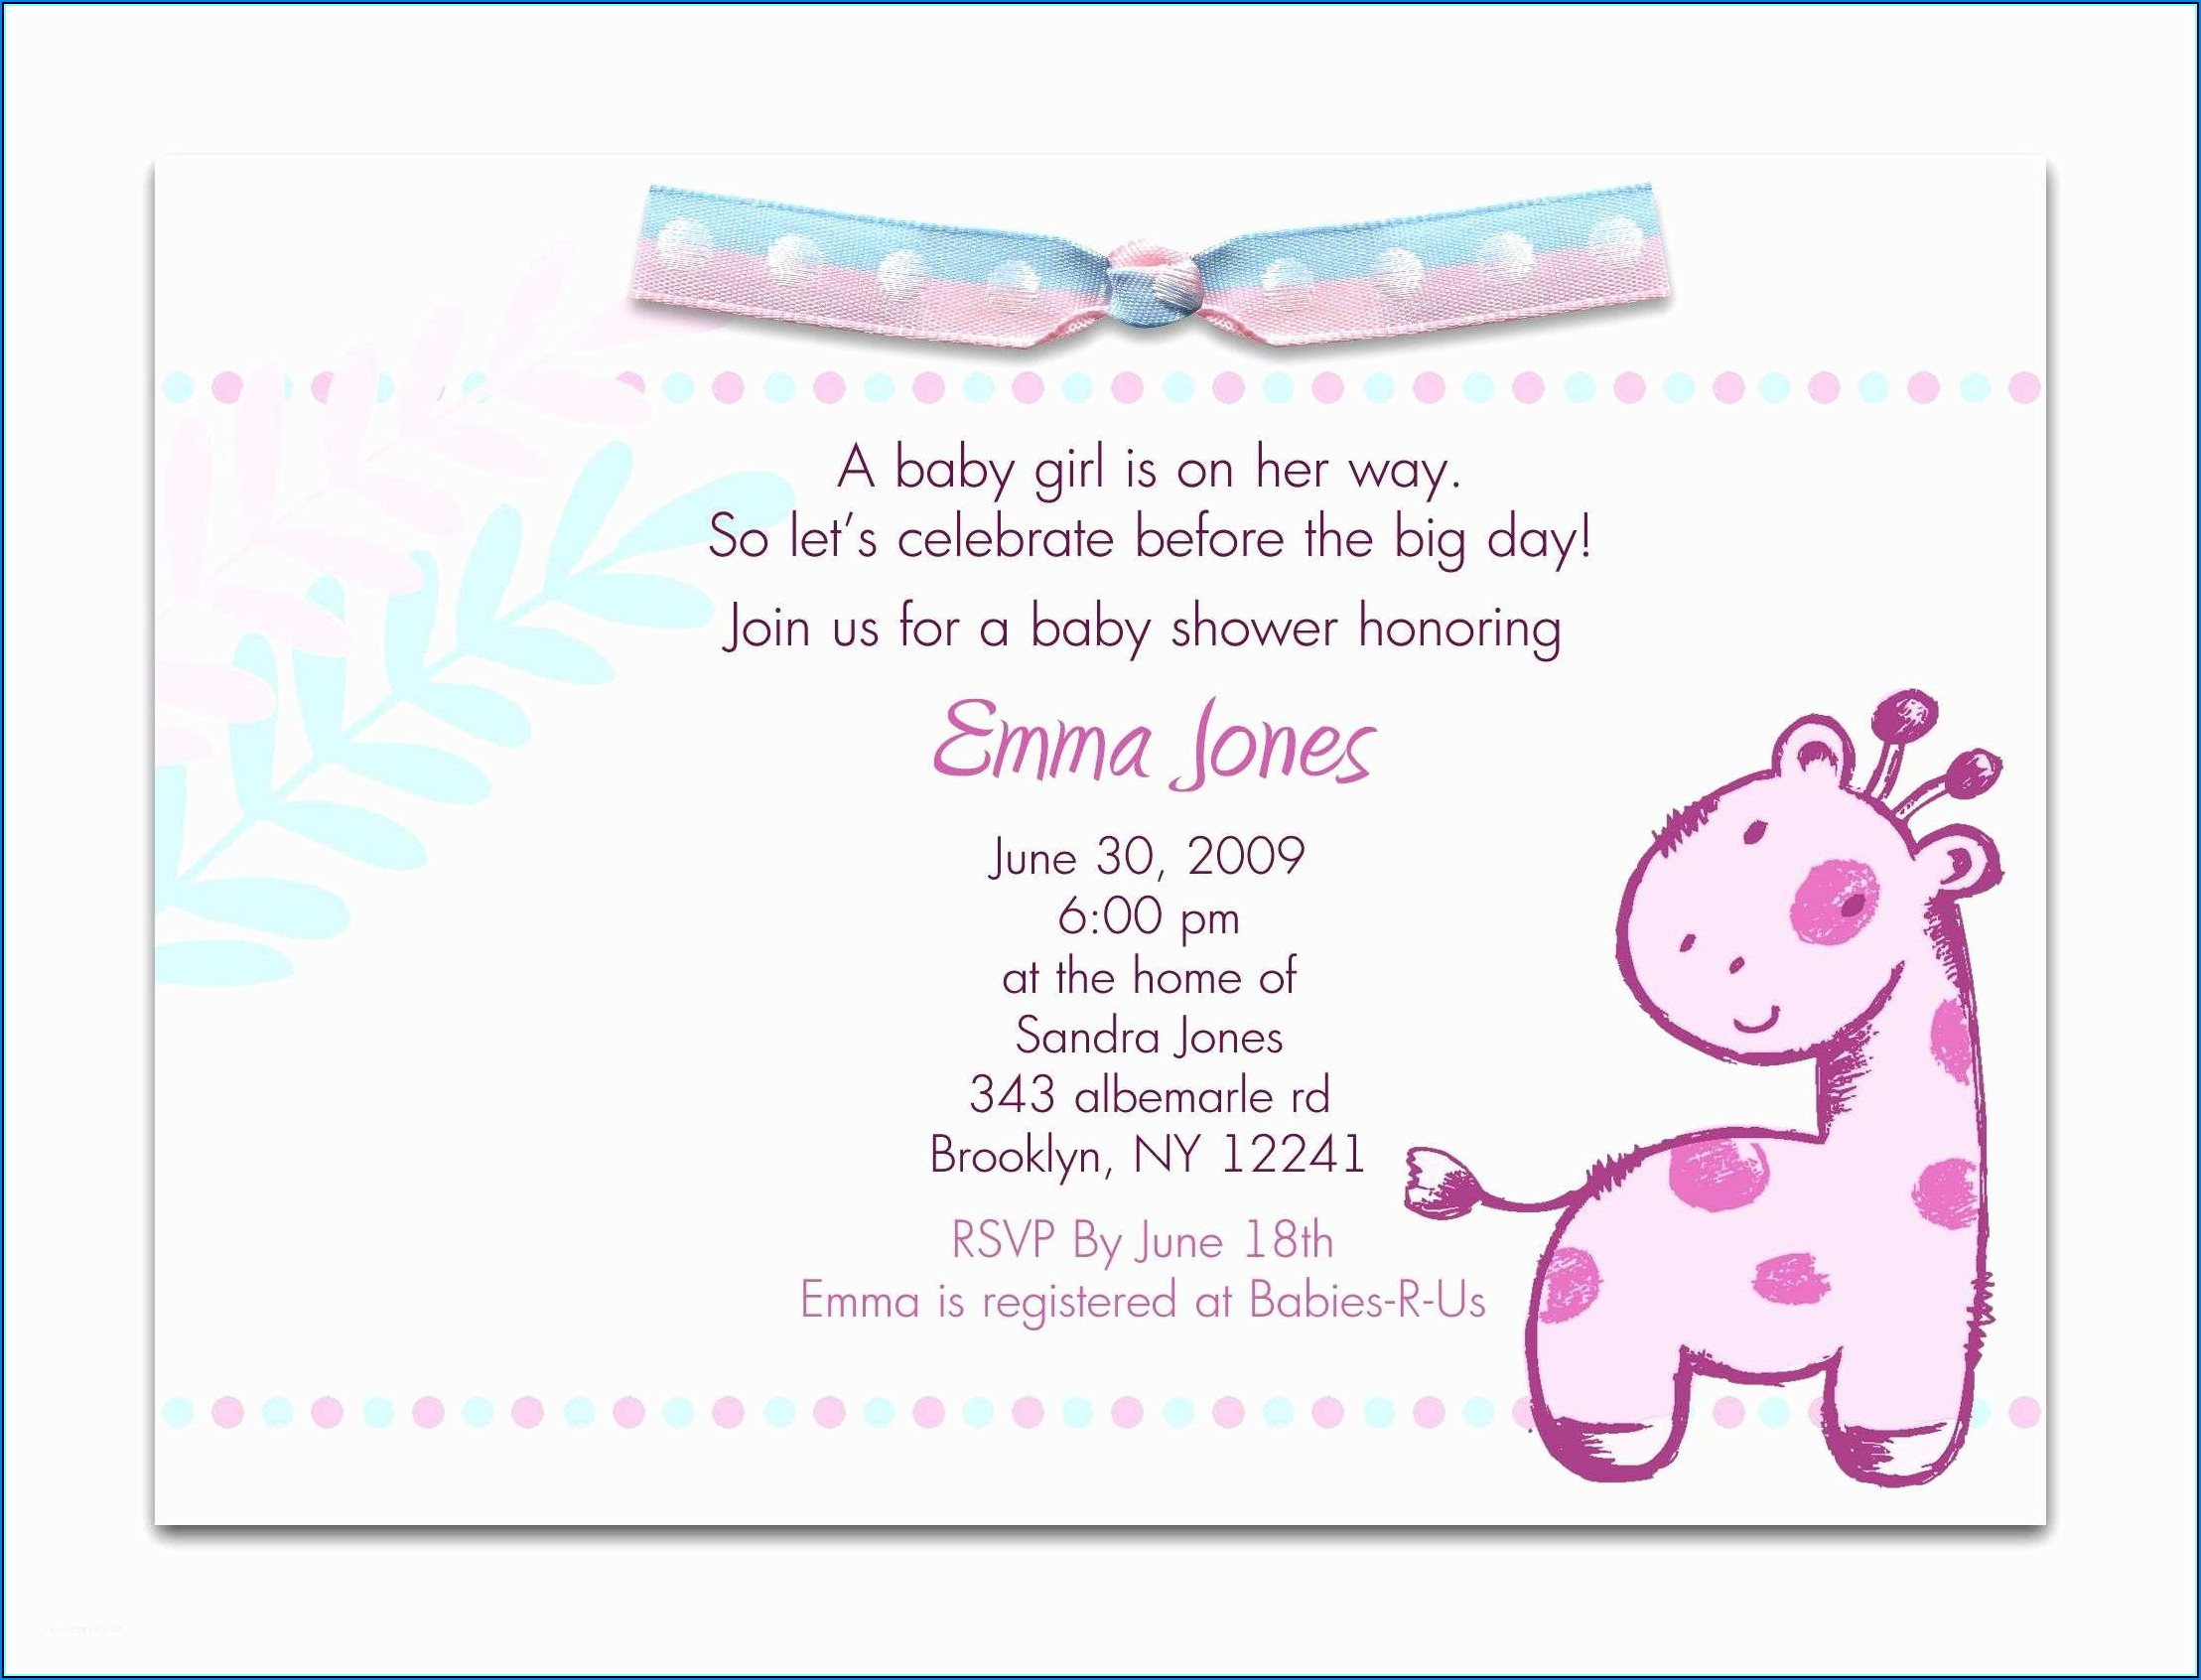 Spanish Baby Shower Invitations Templates